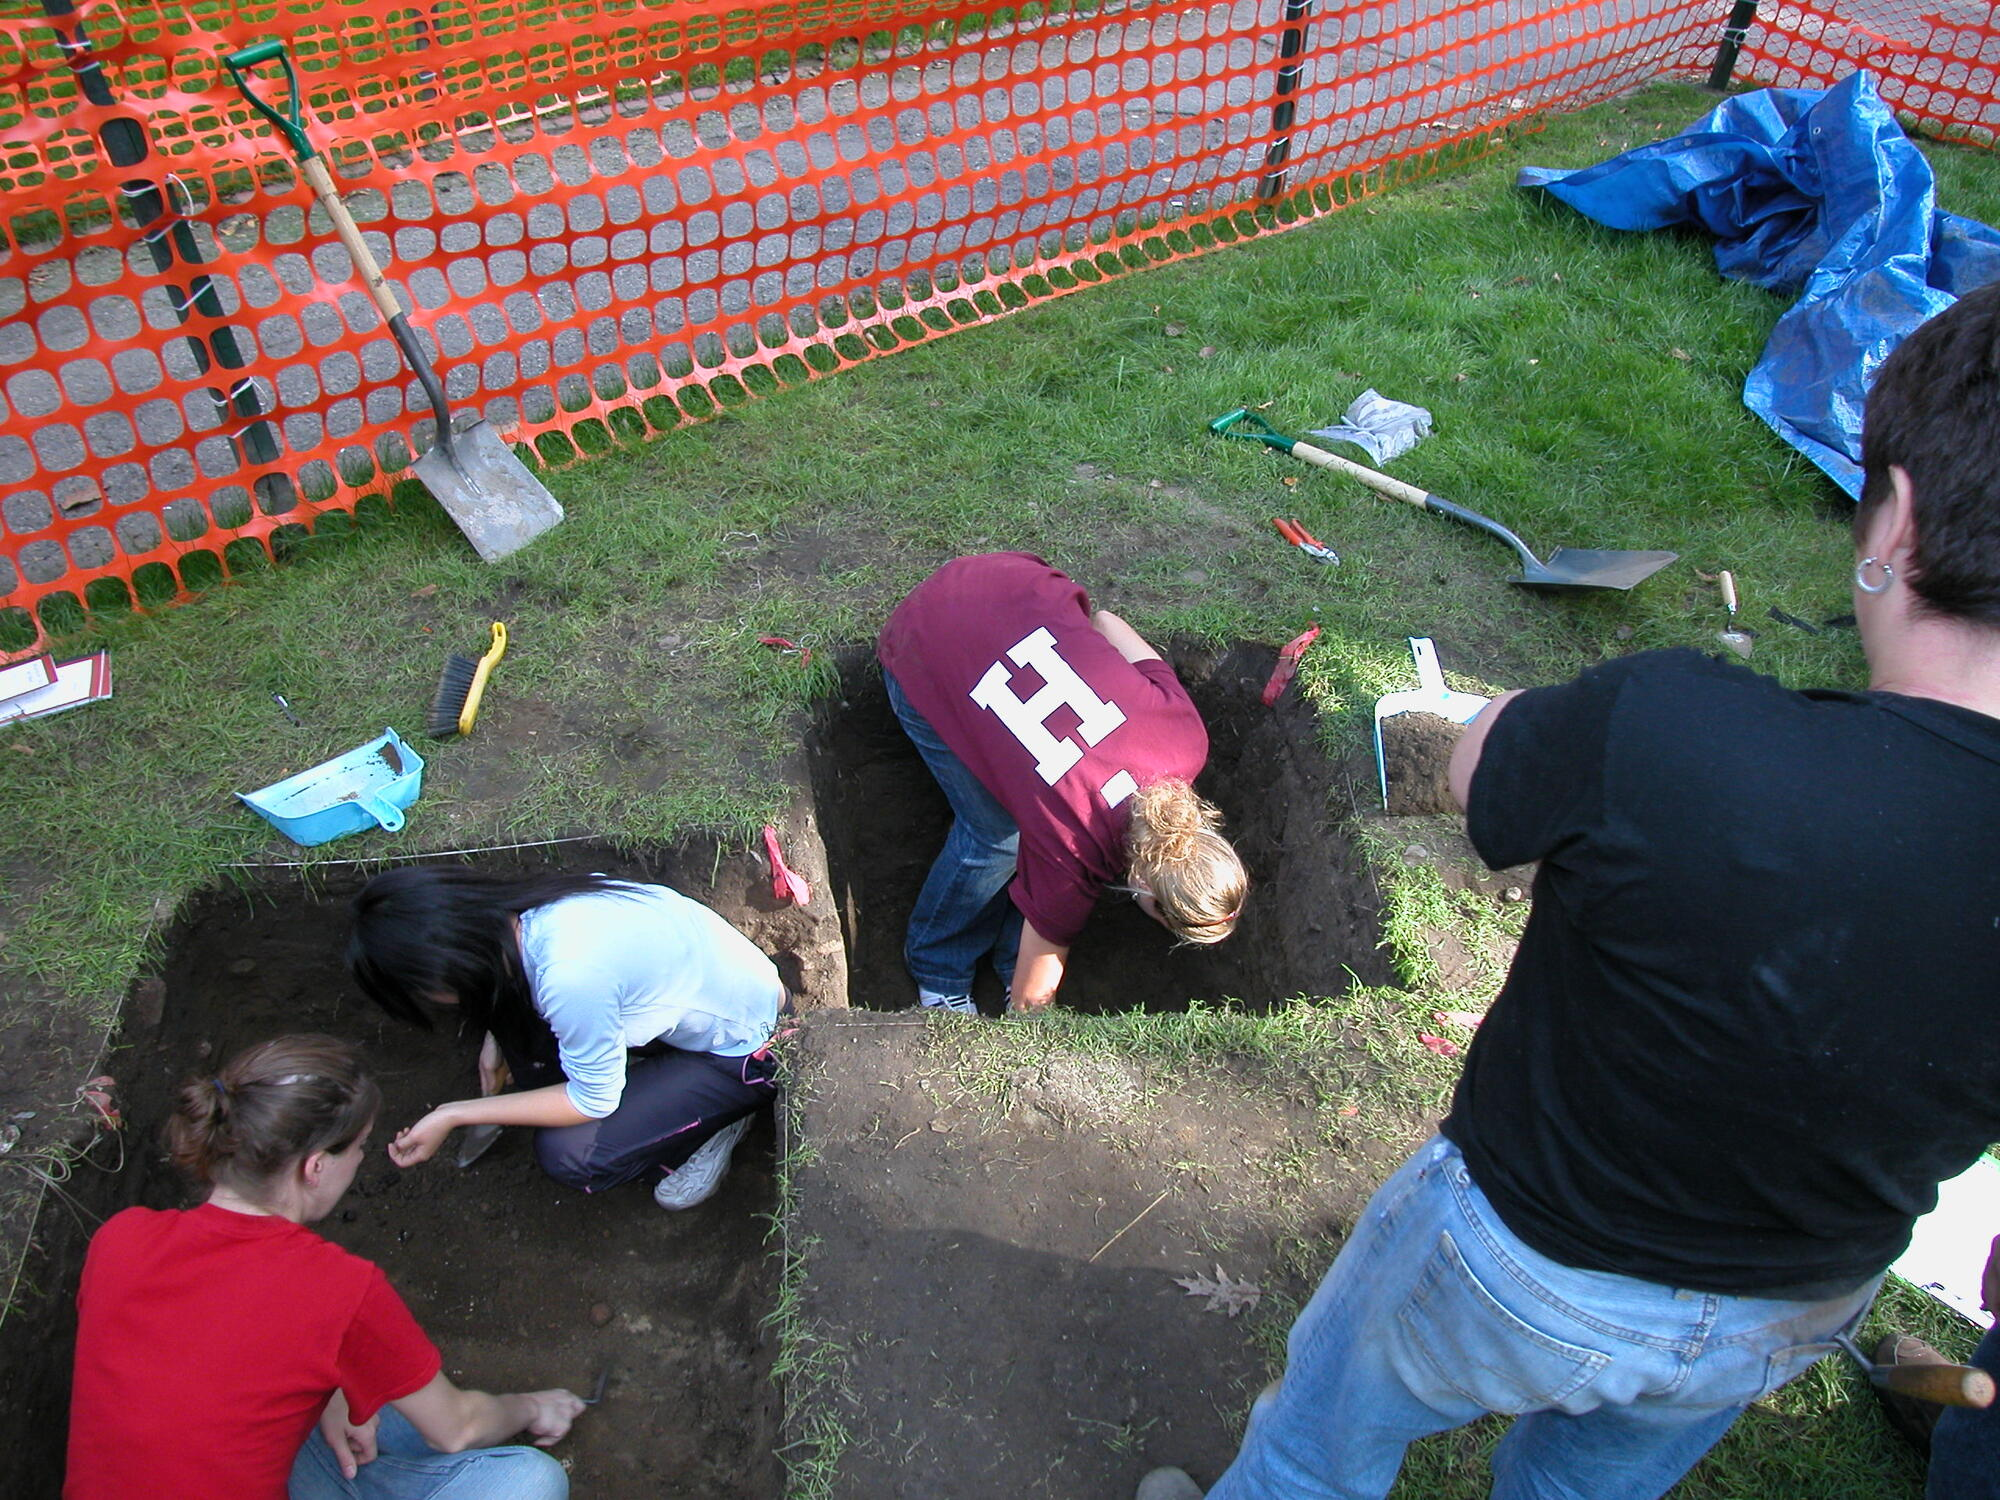 Harvard students doing in the archaeological dig in Harvard Yard.